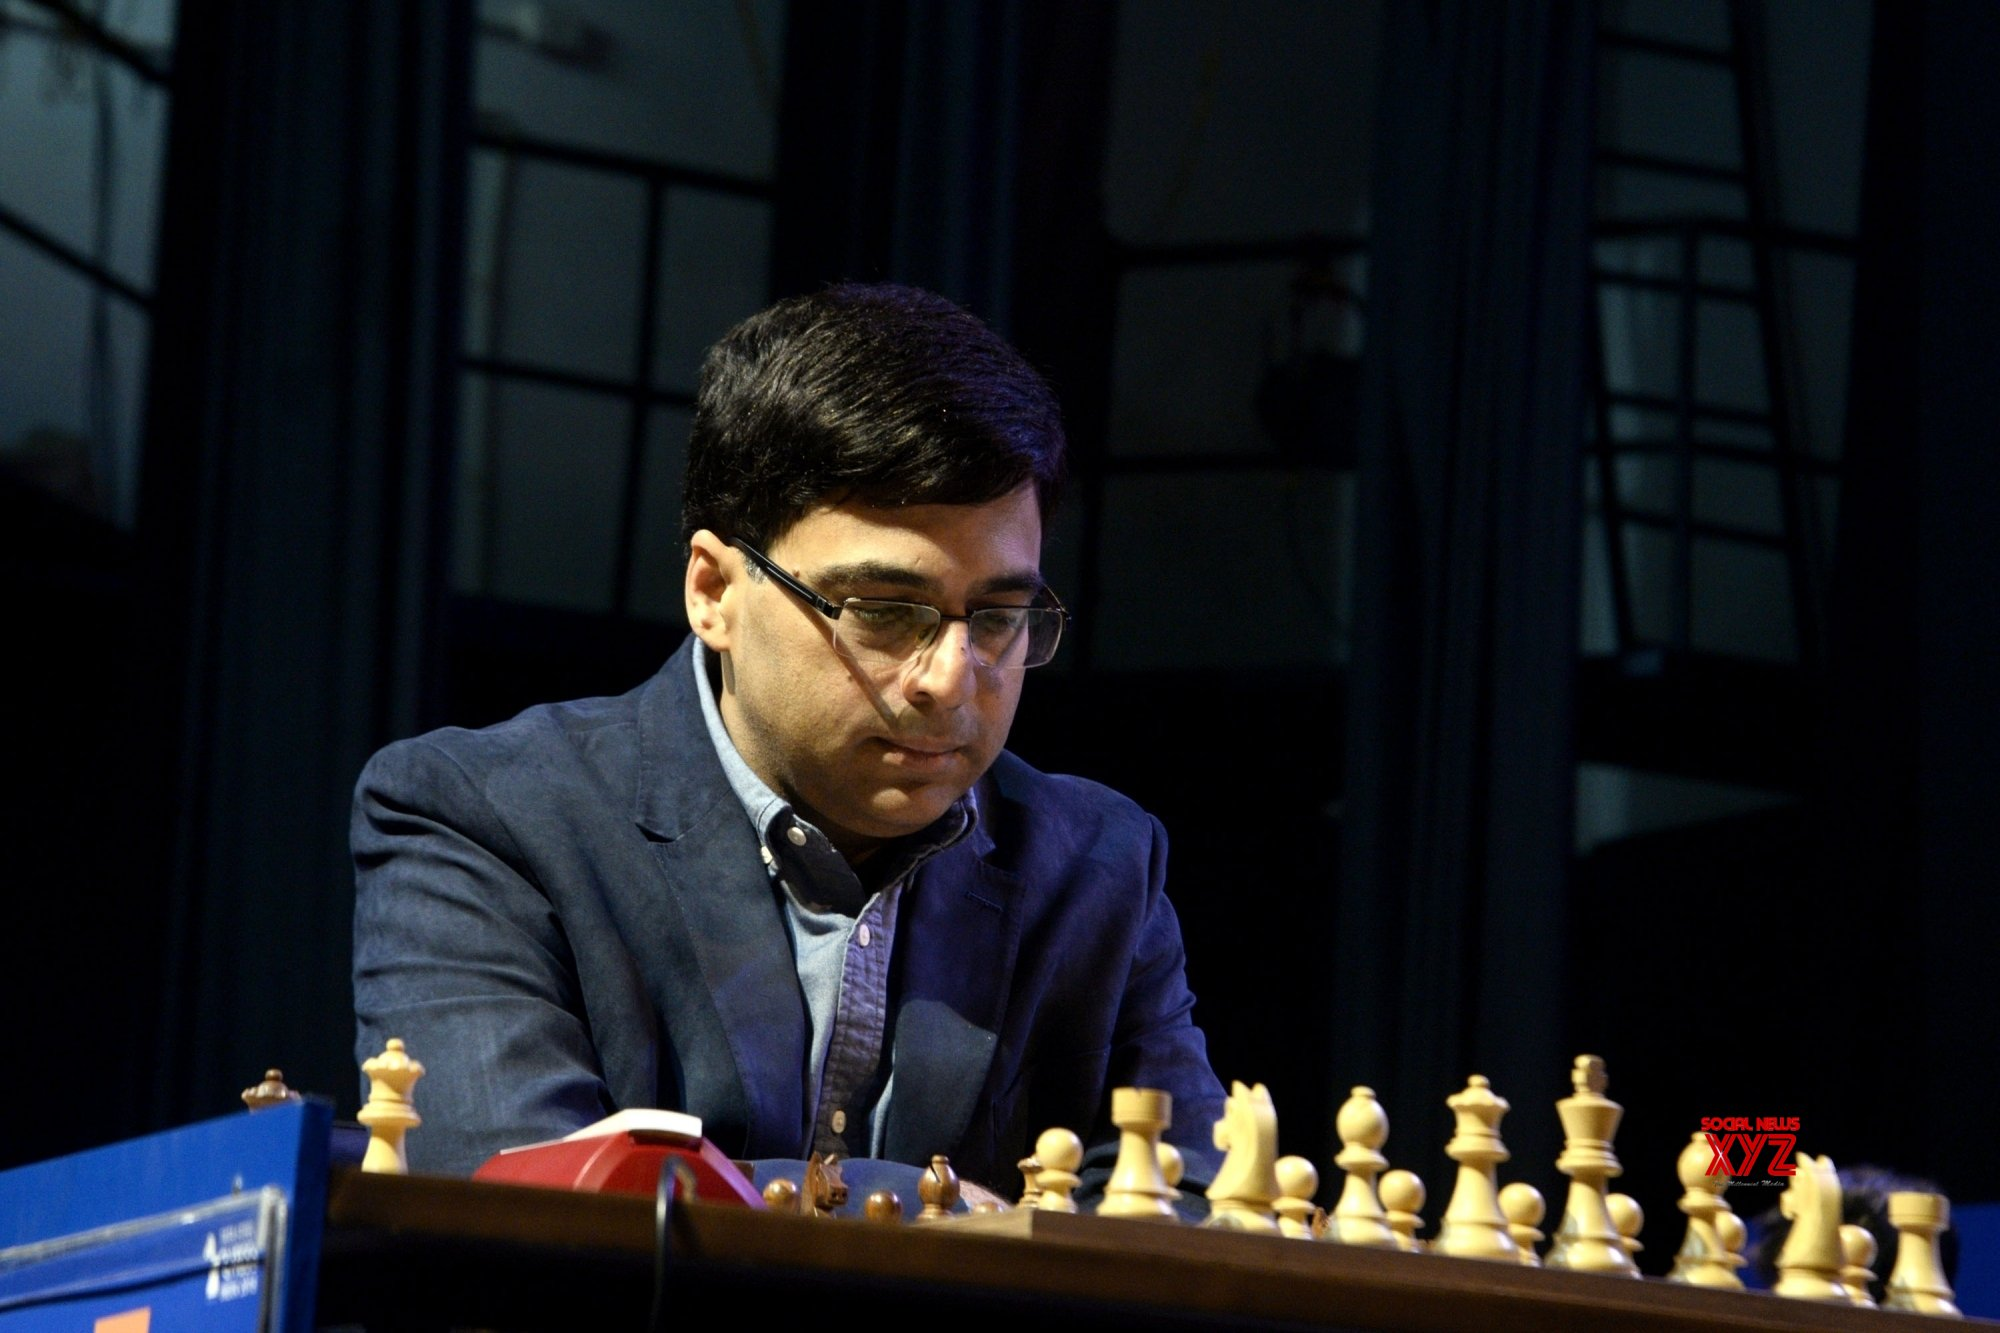 A franchise-based Global Chess League announced